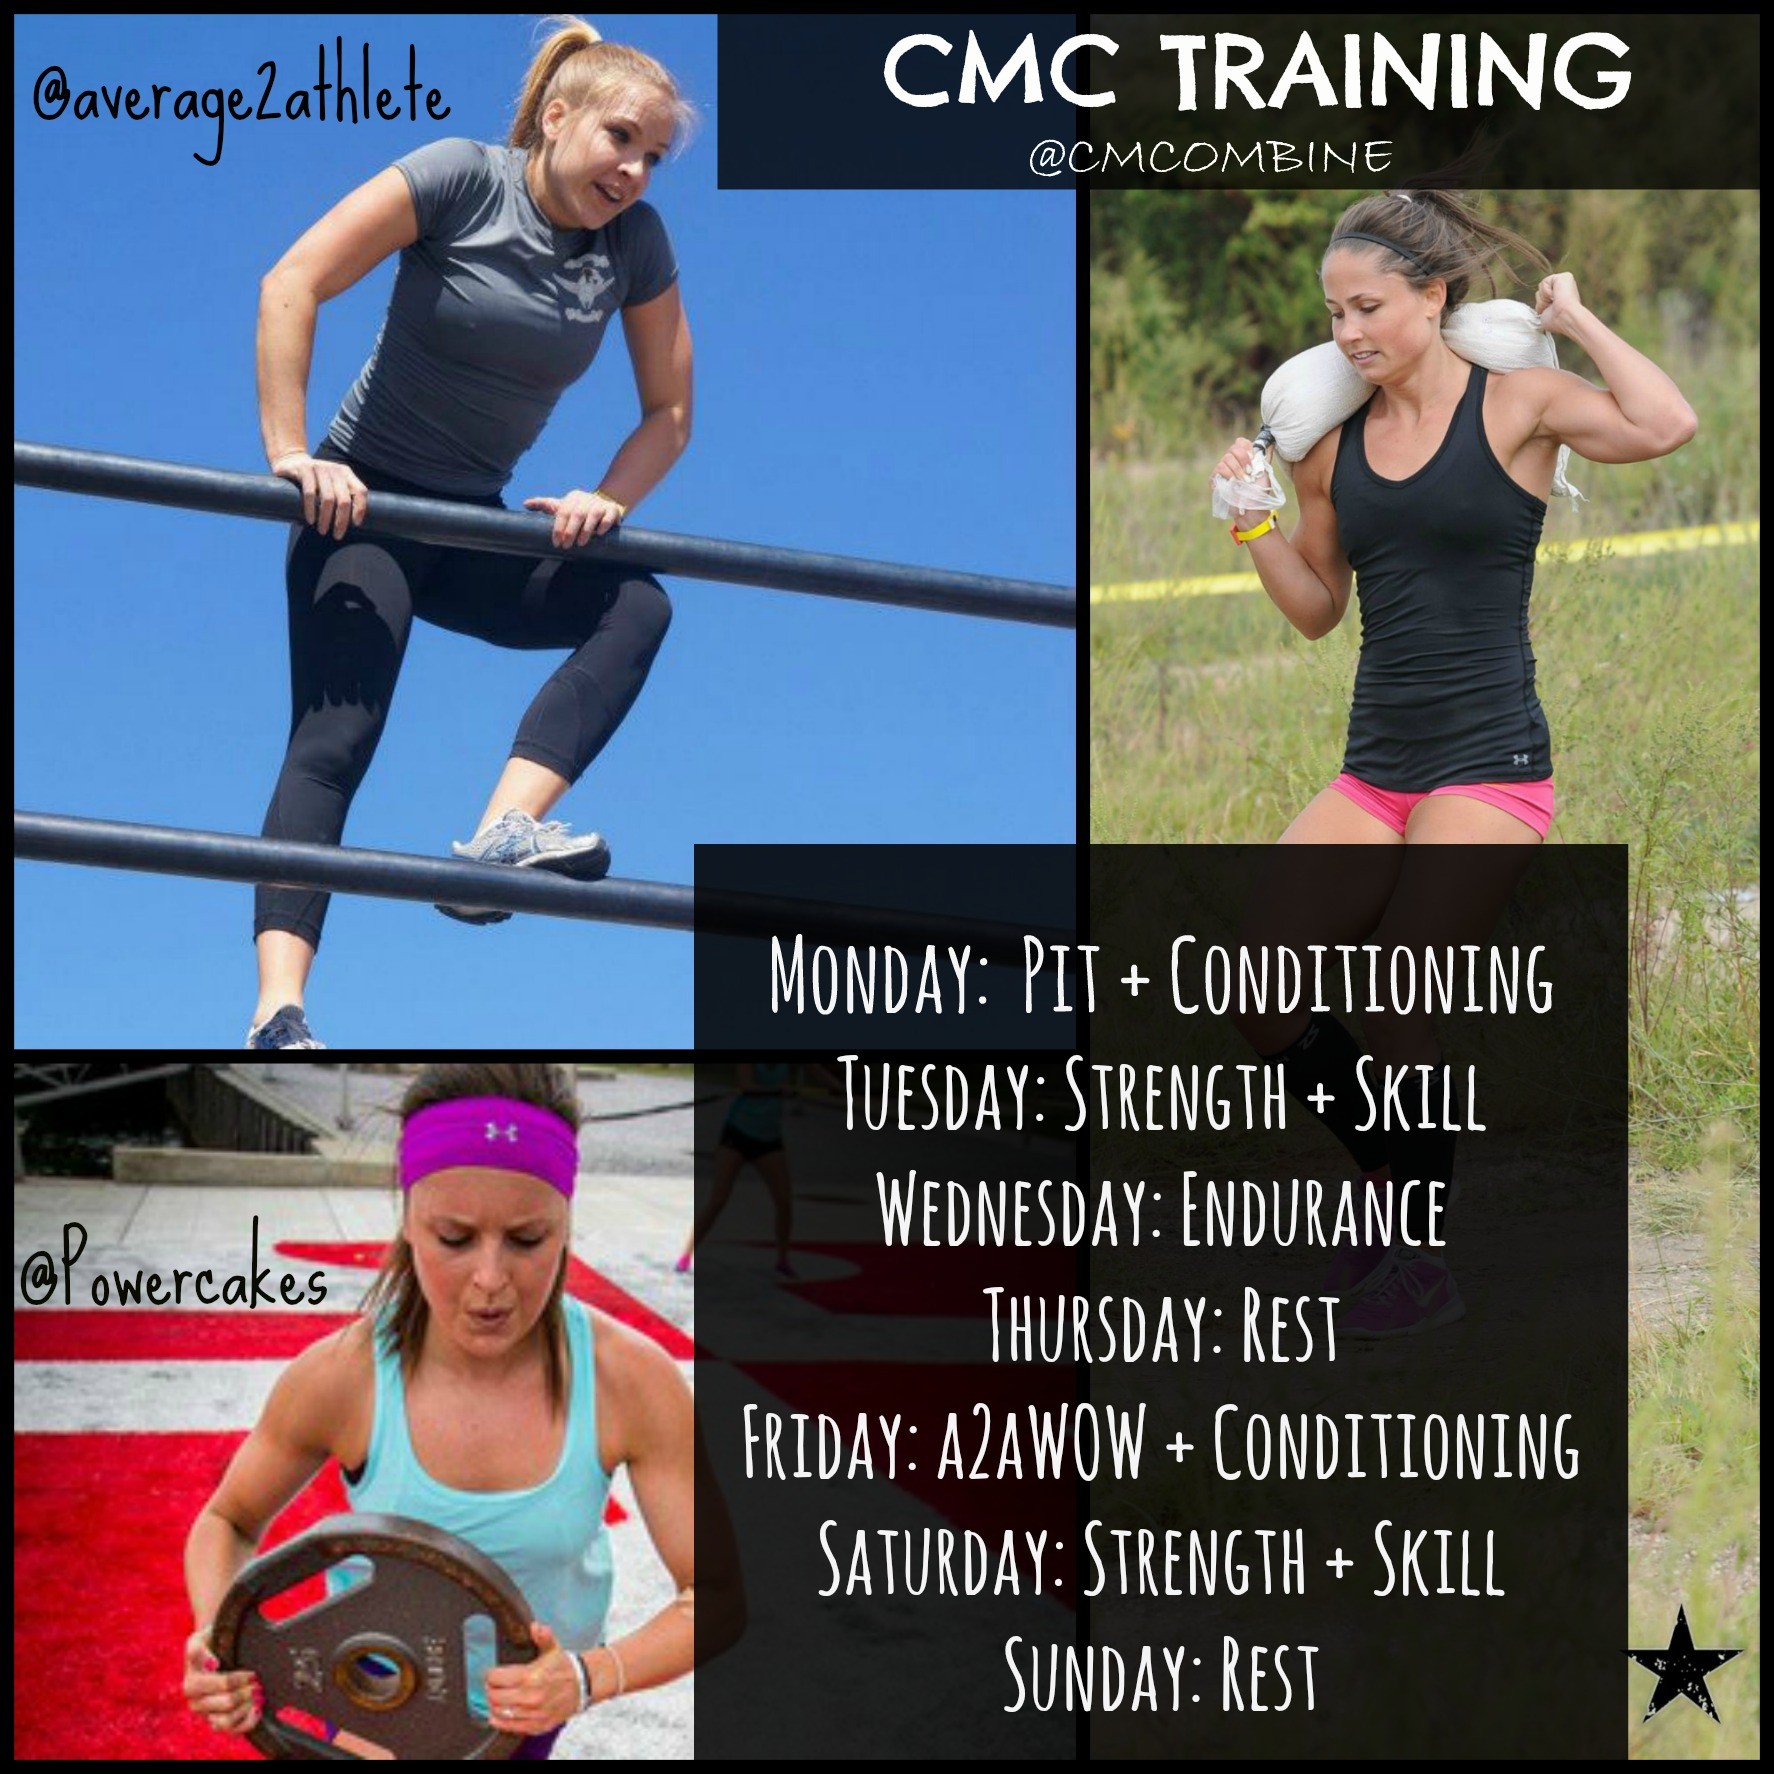 CMC Team Training Collage